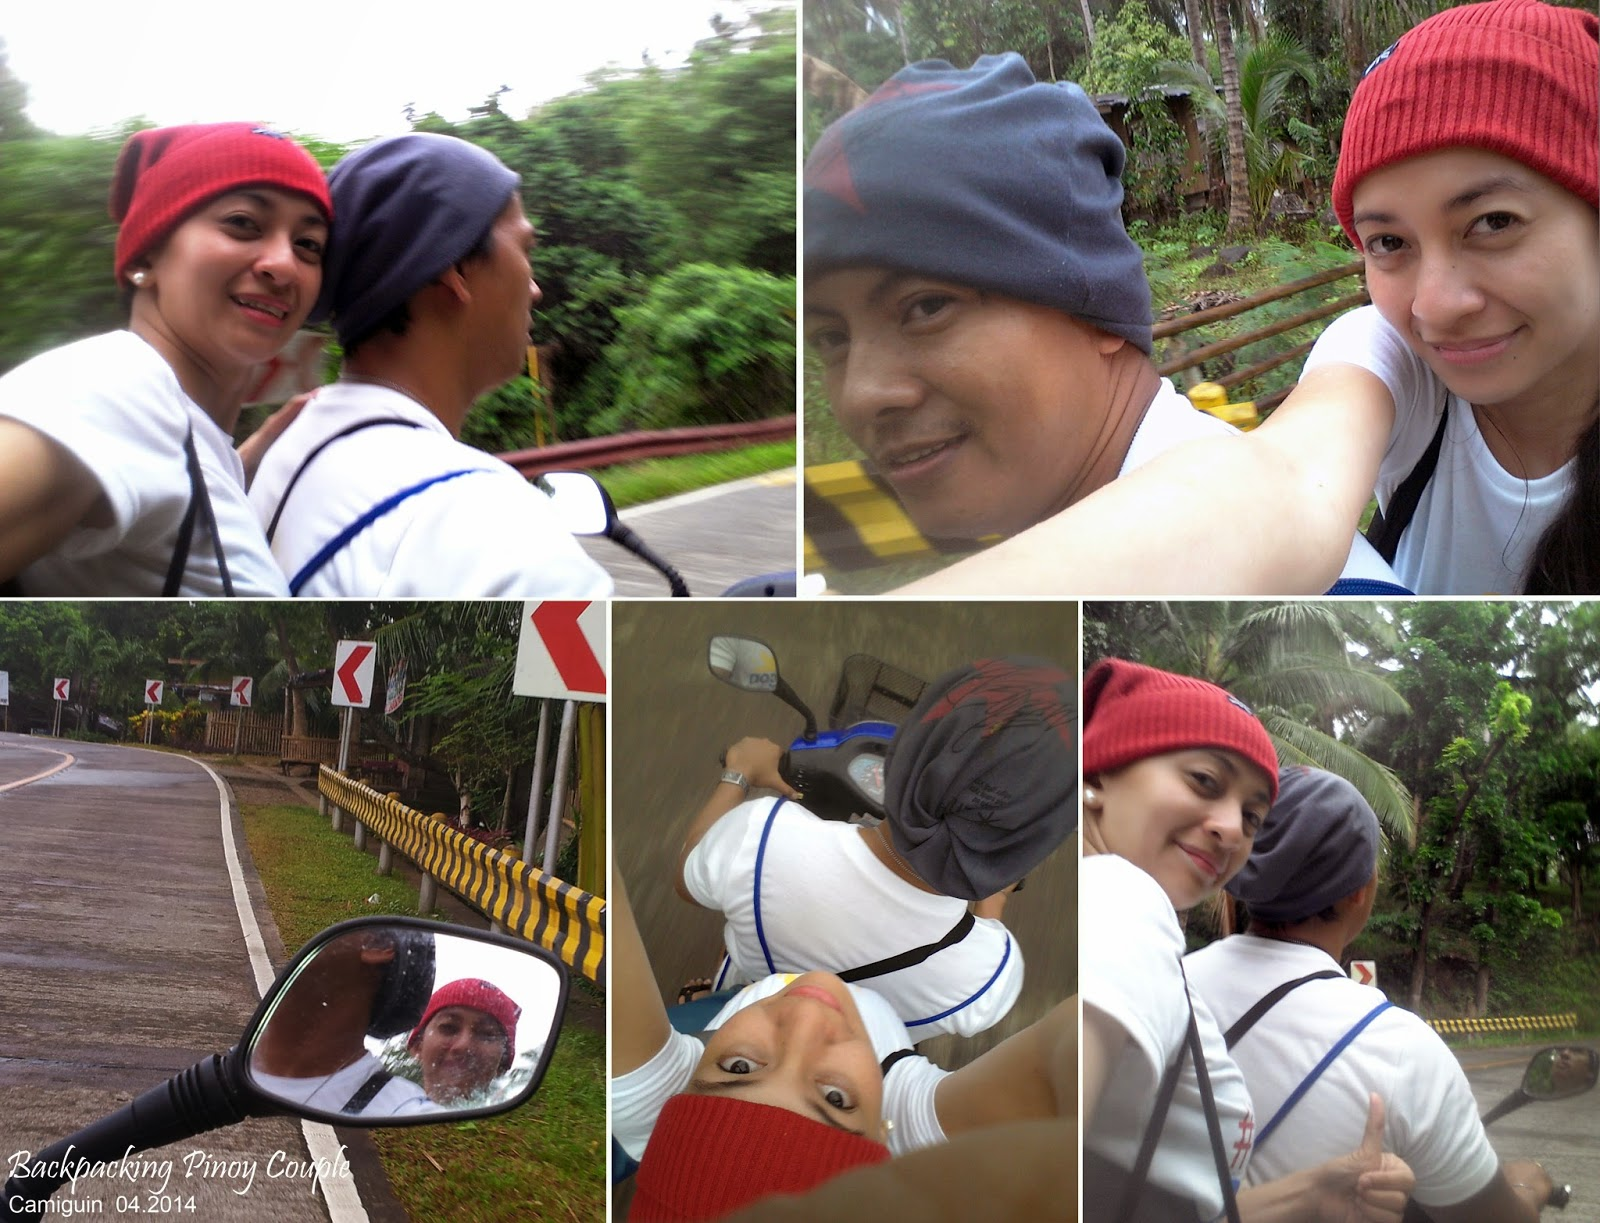 Backpacking Pinoy Couple, Backpacking Philippines, Northern Mindanao, Philippine travel, Camiguin, How to go to Camiguin, what to do in camiguin, where to go in camiguin, Camiguin roadtrip, road trip, Camiguin Itinerary, motor riding in Camiguin